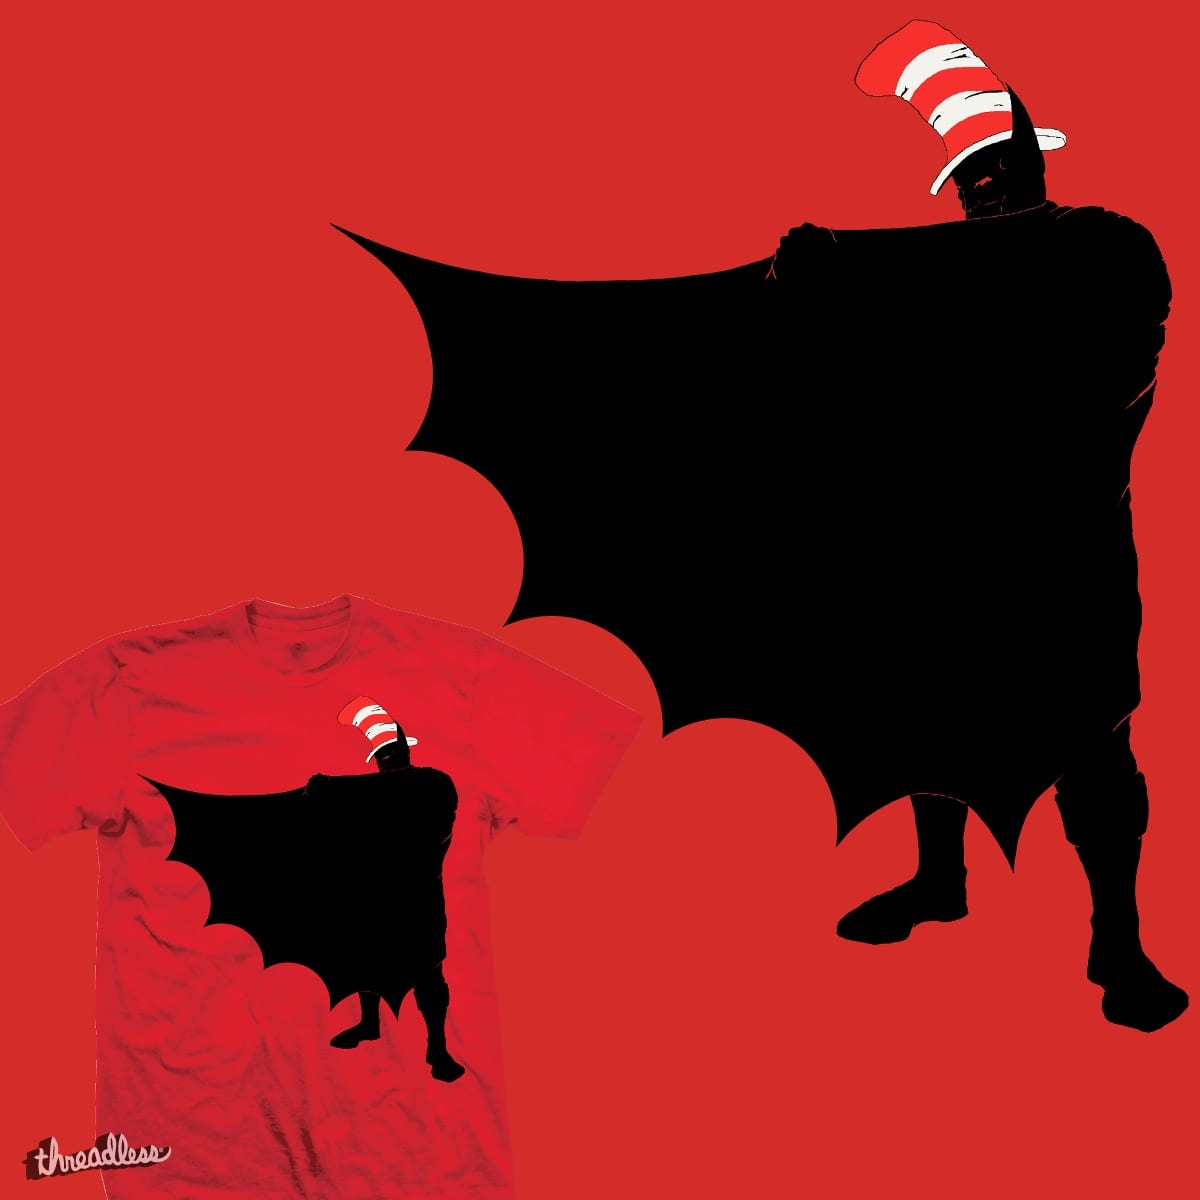 Bat in the Hat by gl35 on Threadless